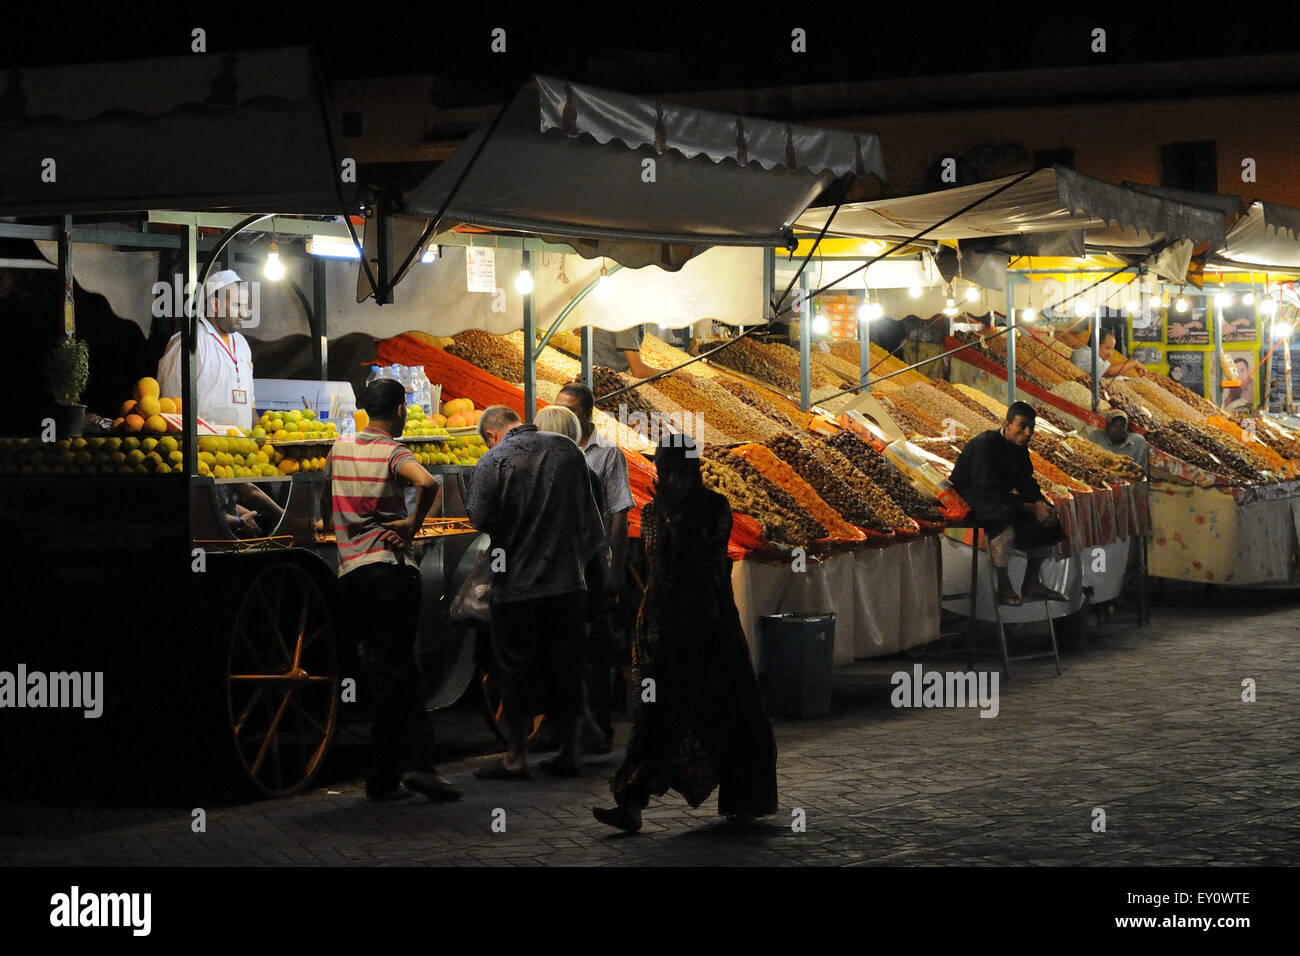 Stands with spices and orange juice stall in Djema el-Fna square at night. Stock Photo